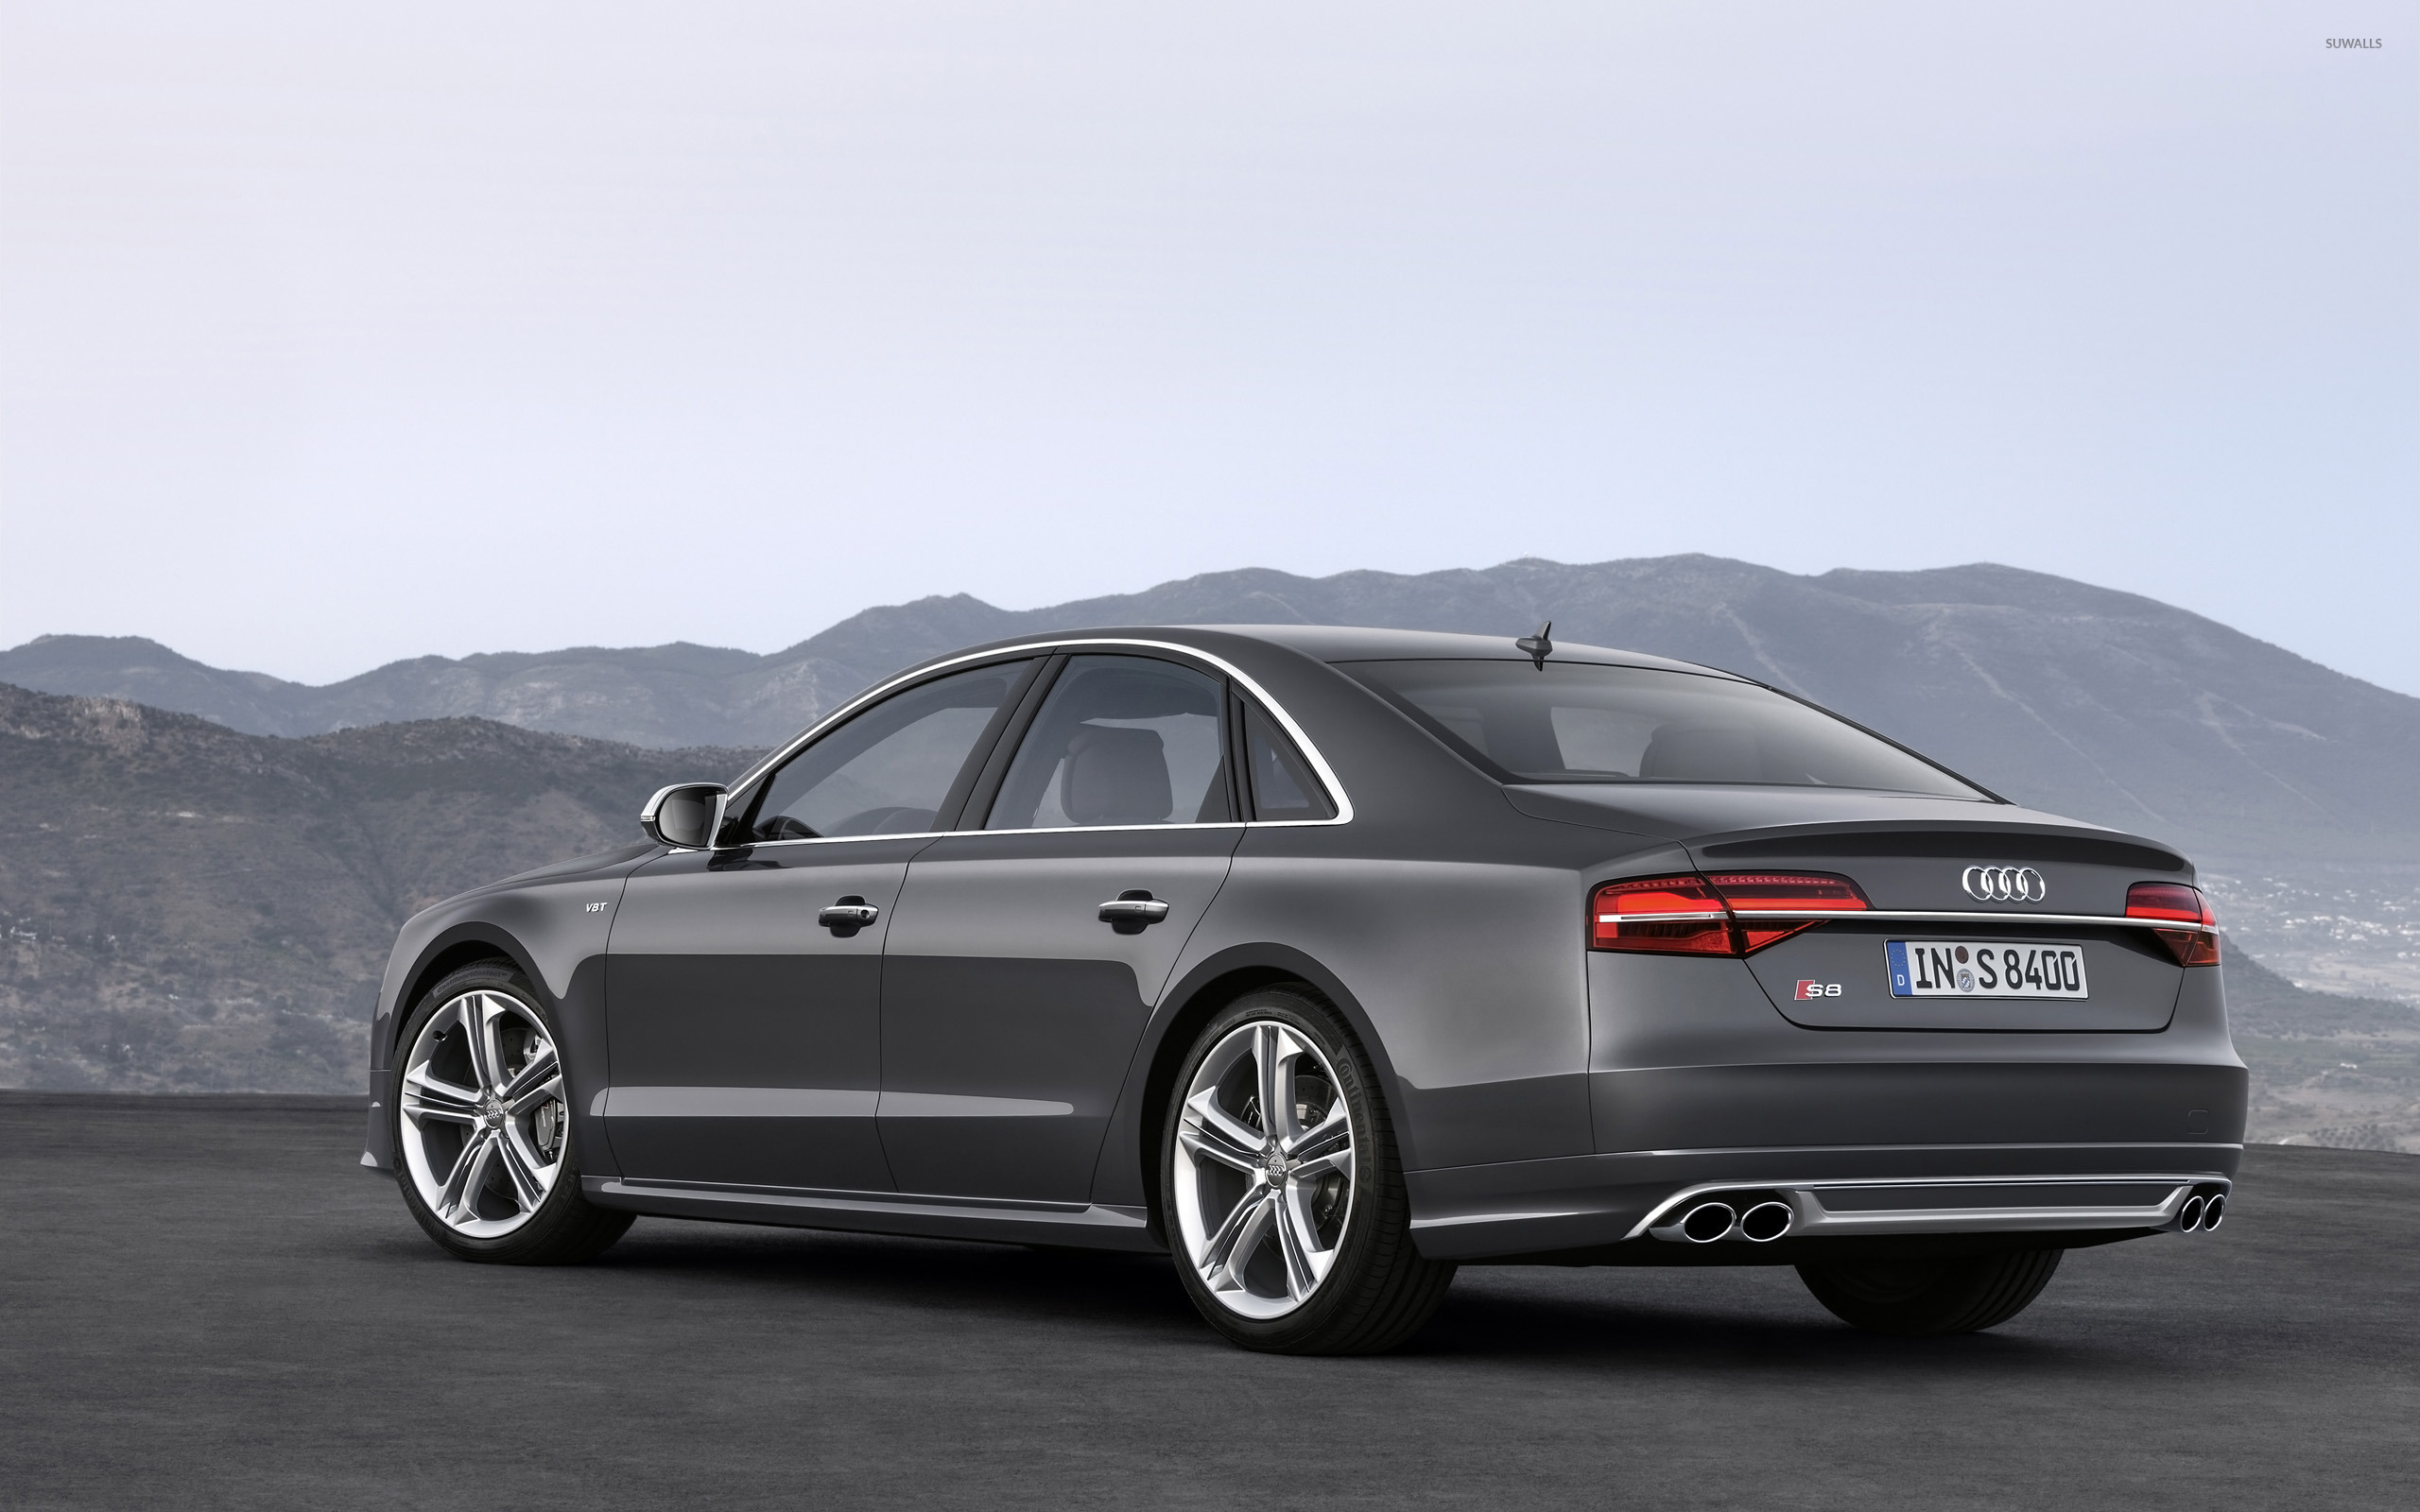 Audi S8 Wallpapers 4USkYcom 2560x1600